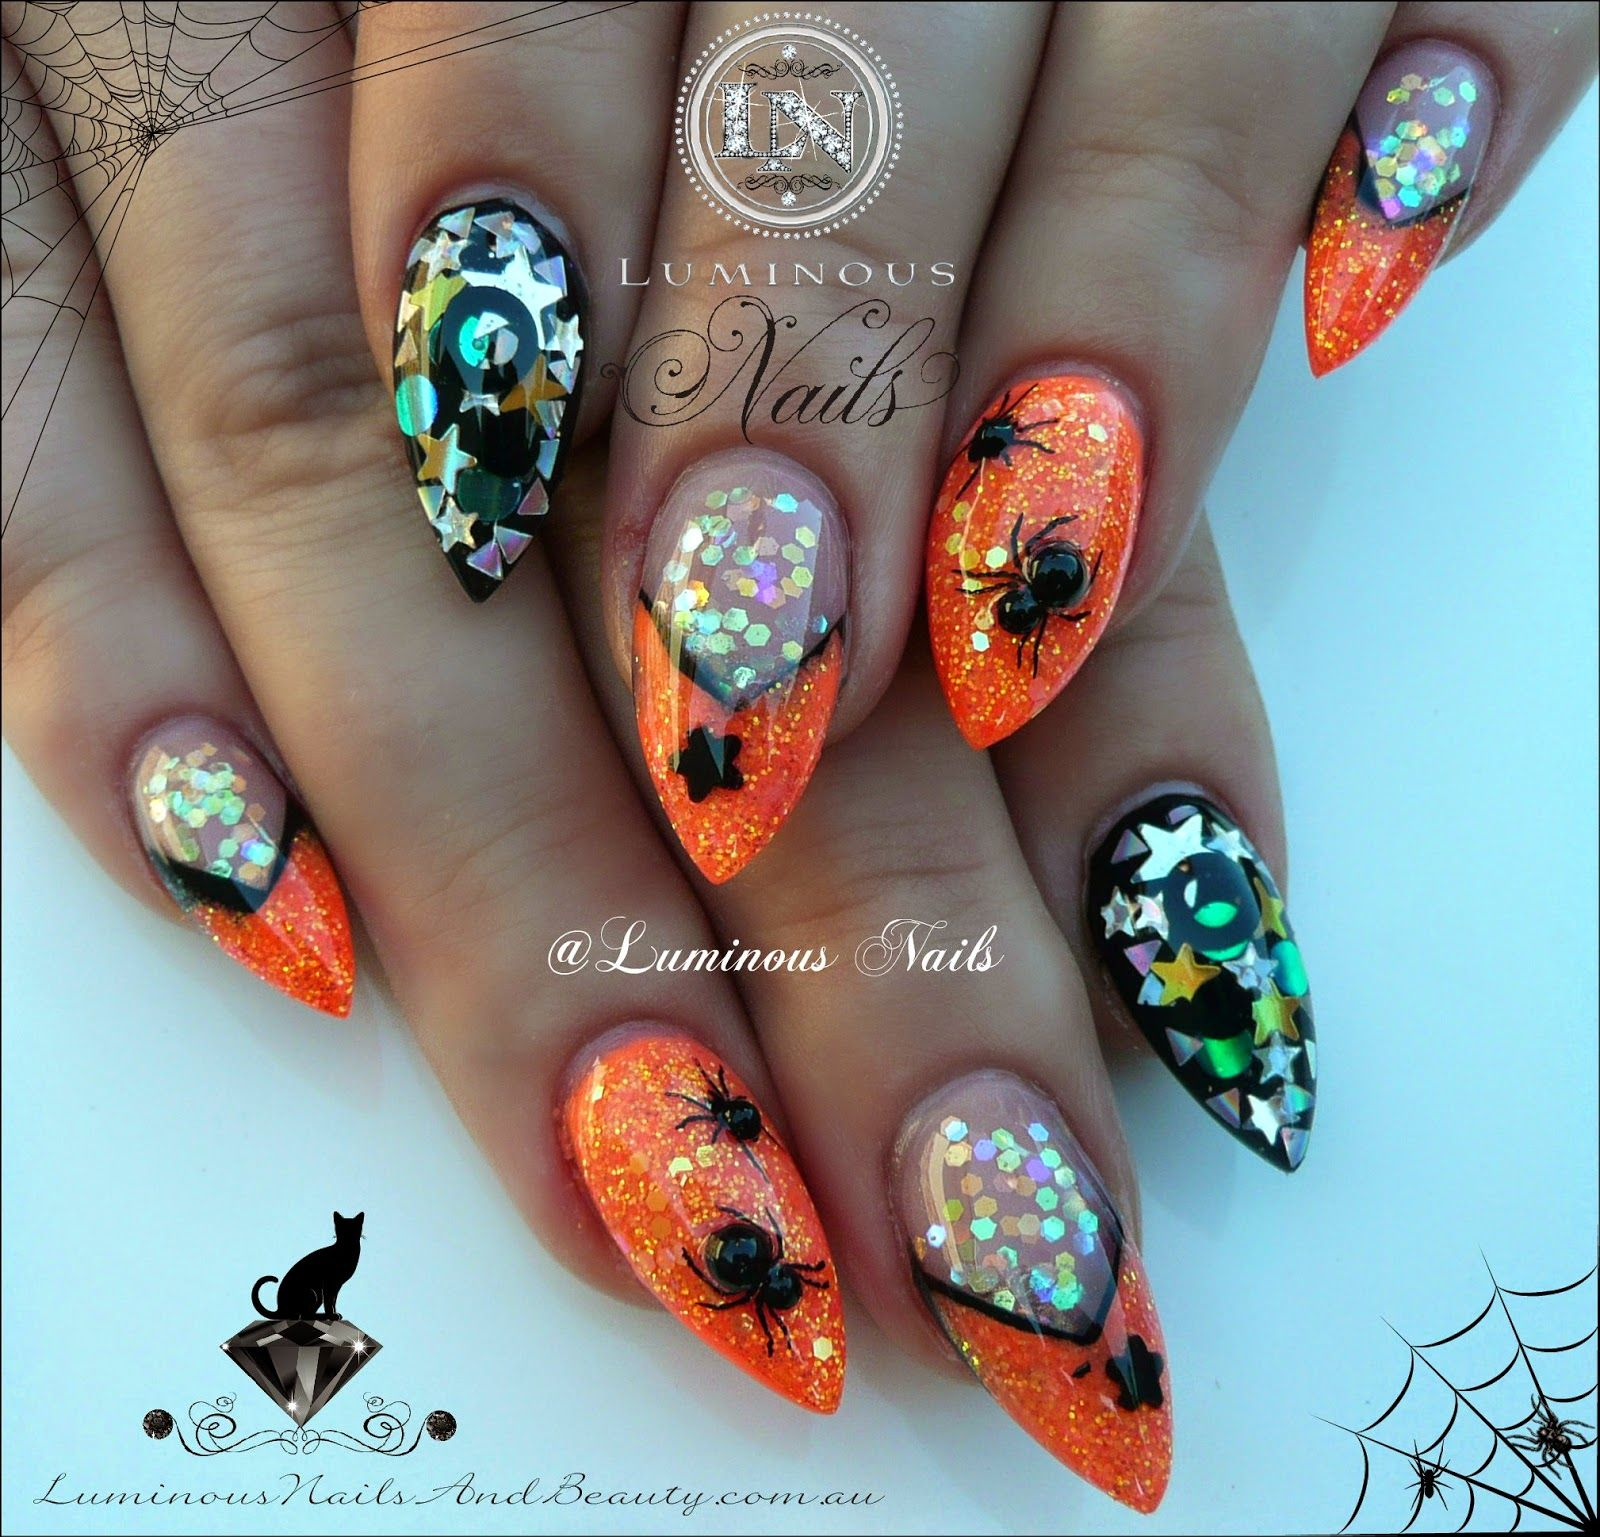 Luminous nails halloween acrylic nails with scary creepy spiders luminous nails halloween acrylic nails with scary creepy spiders prinsesfo Image collections